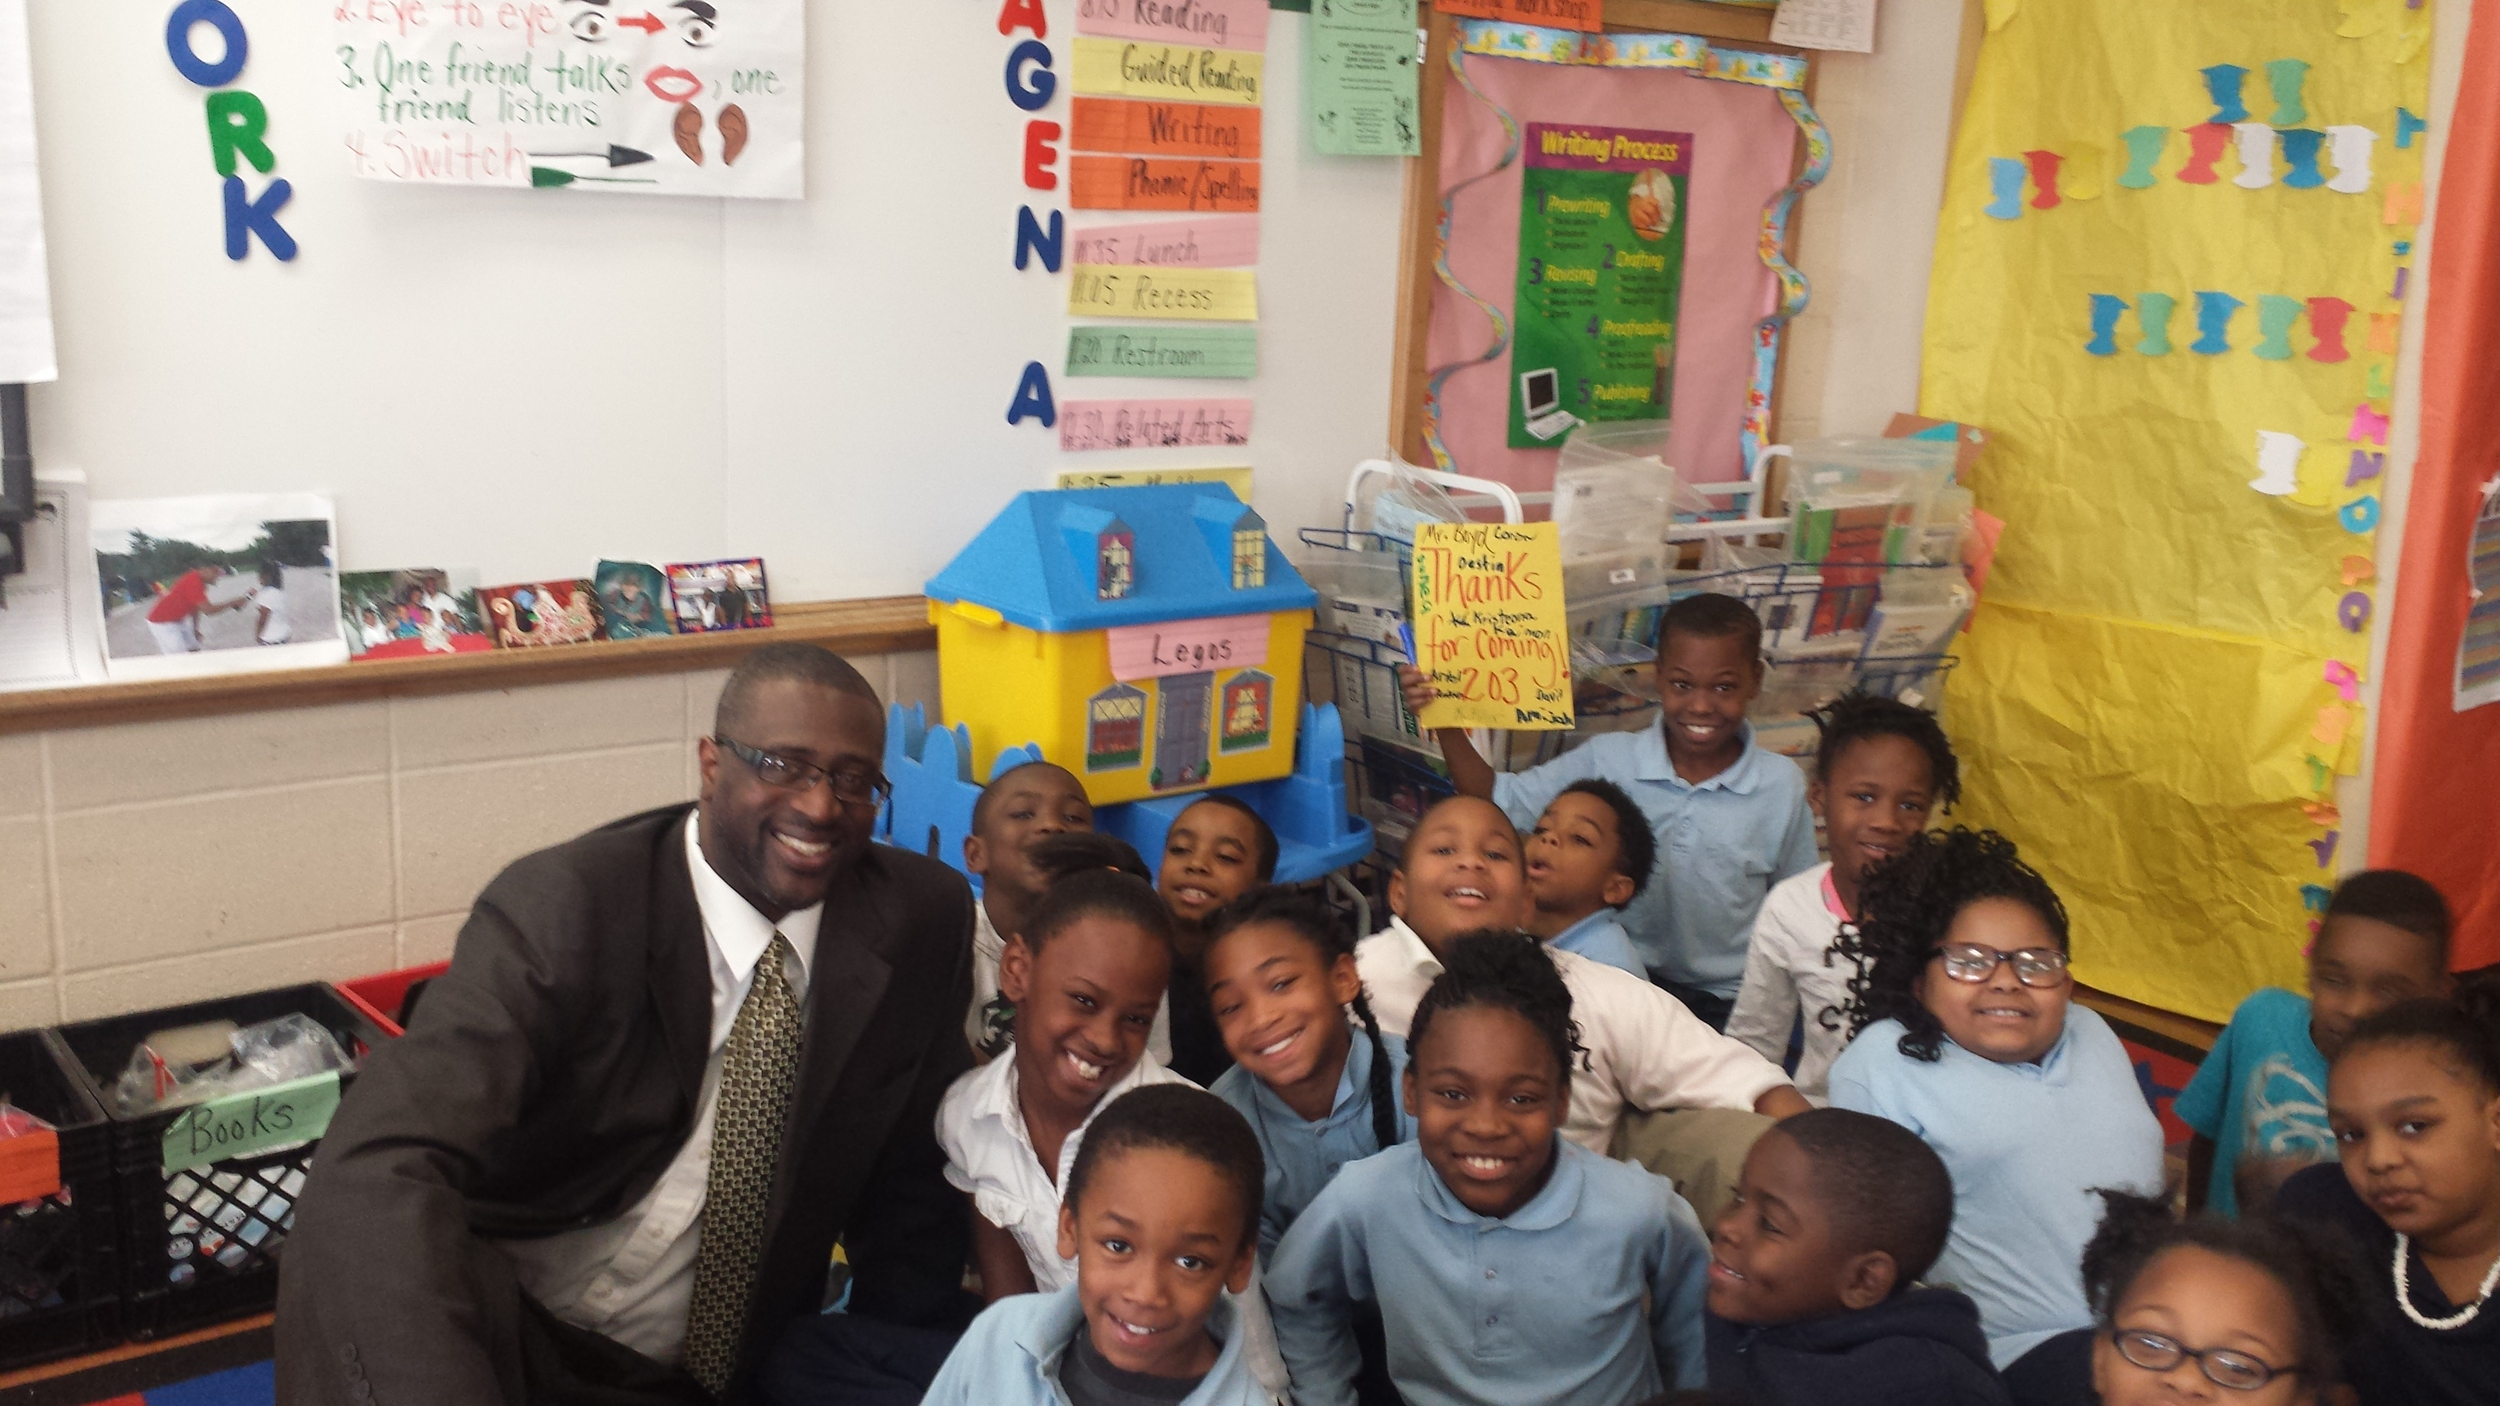 It was a pleasure learning with the 2nd graders at Peabody Elementary School. They are all doctors.